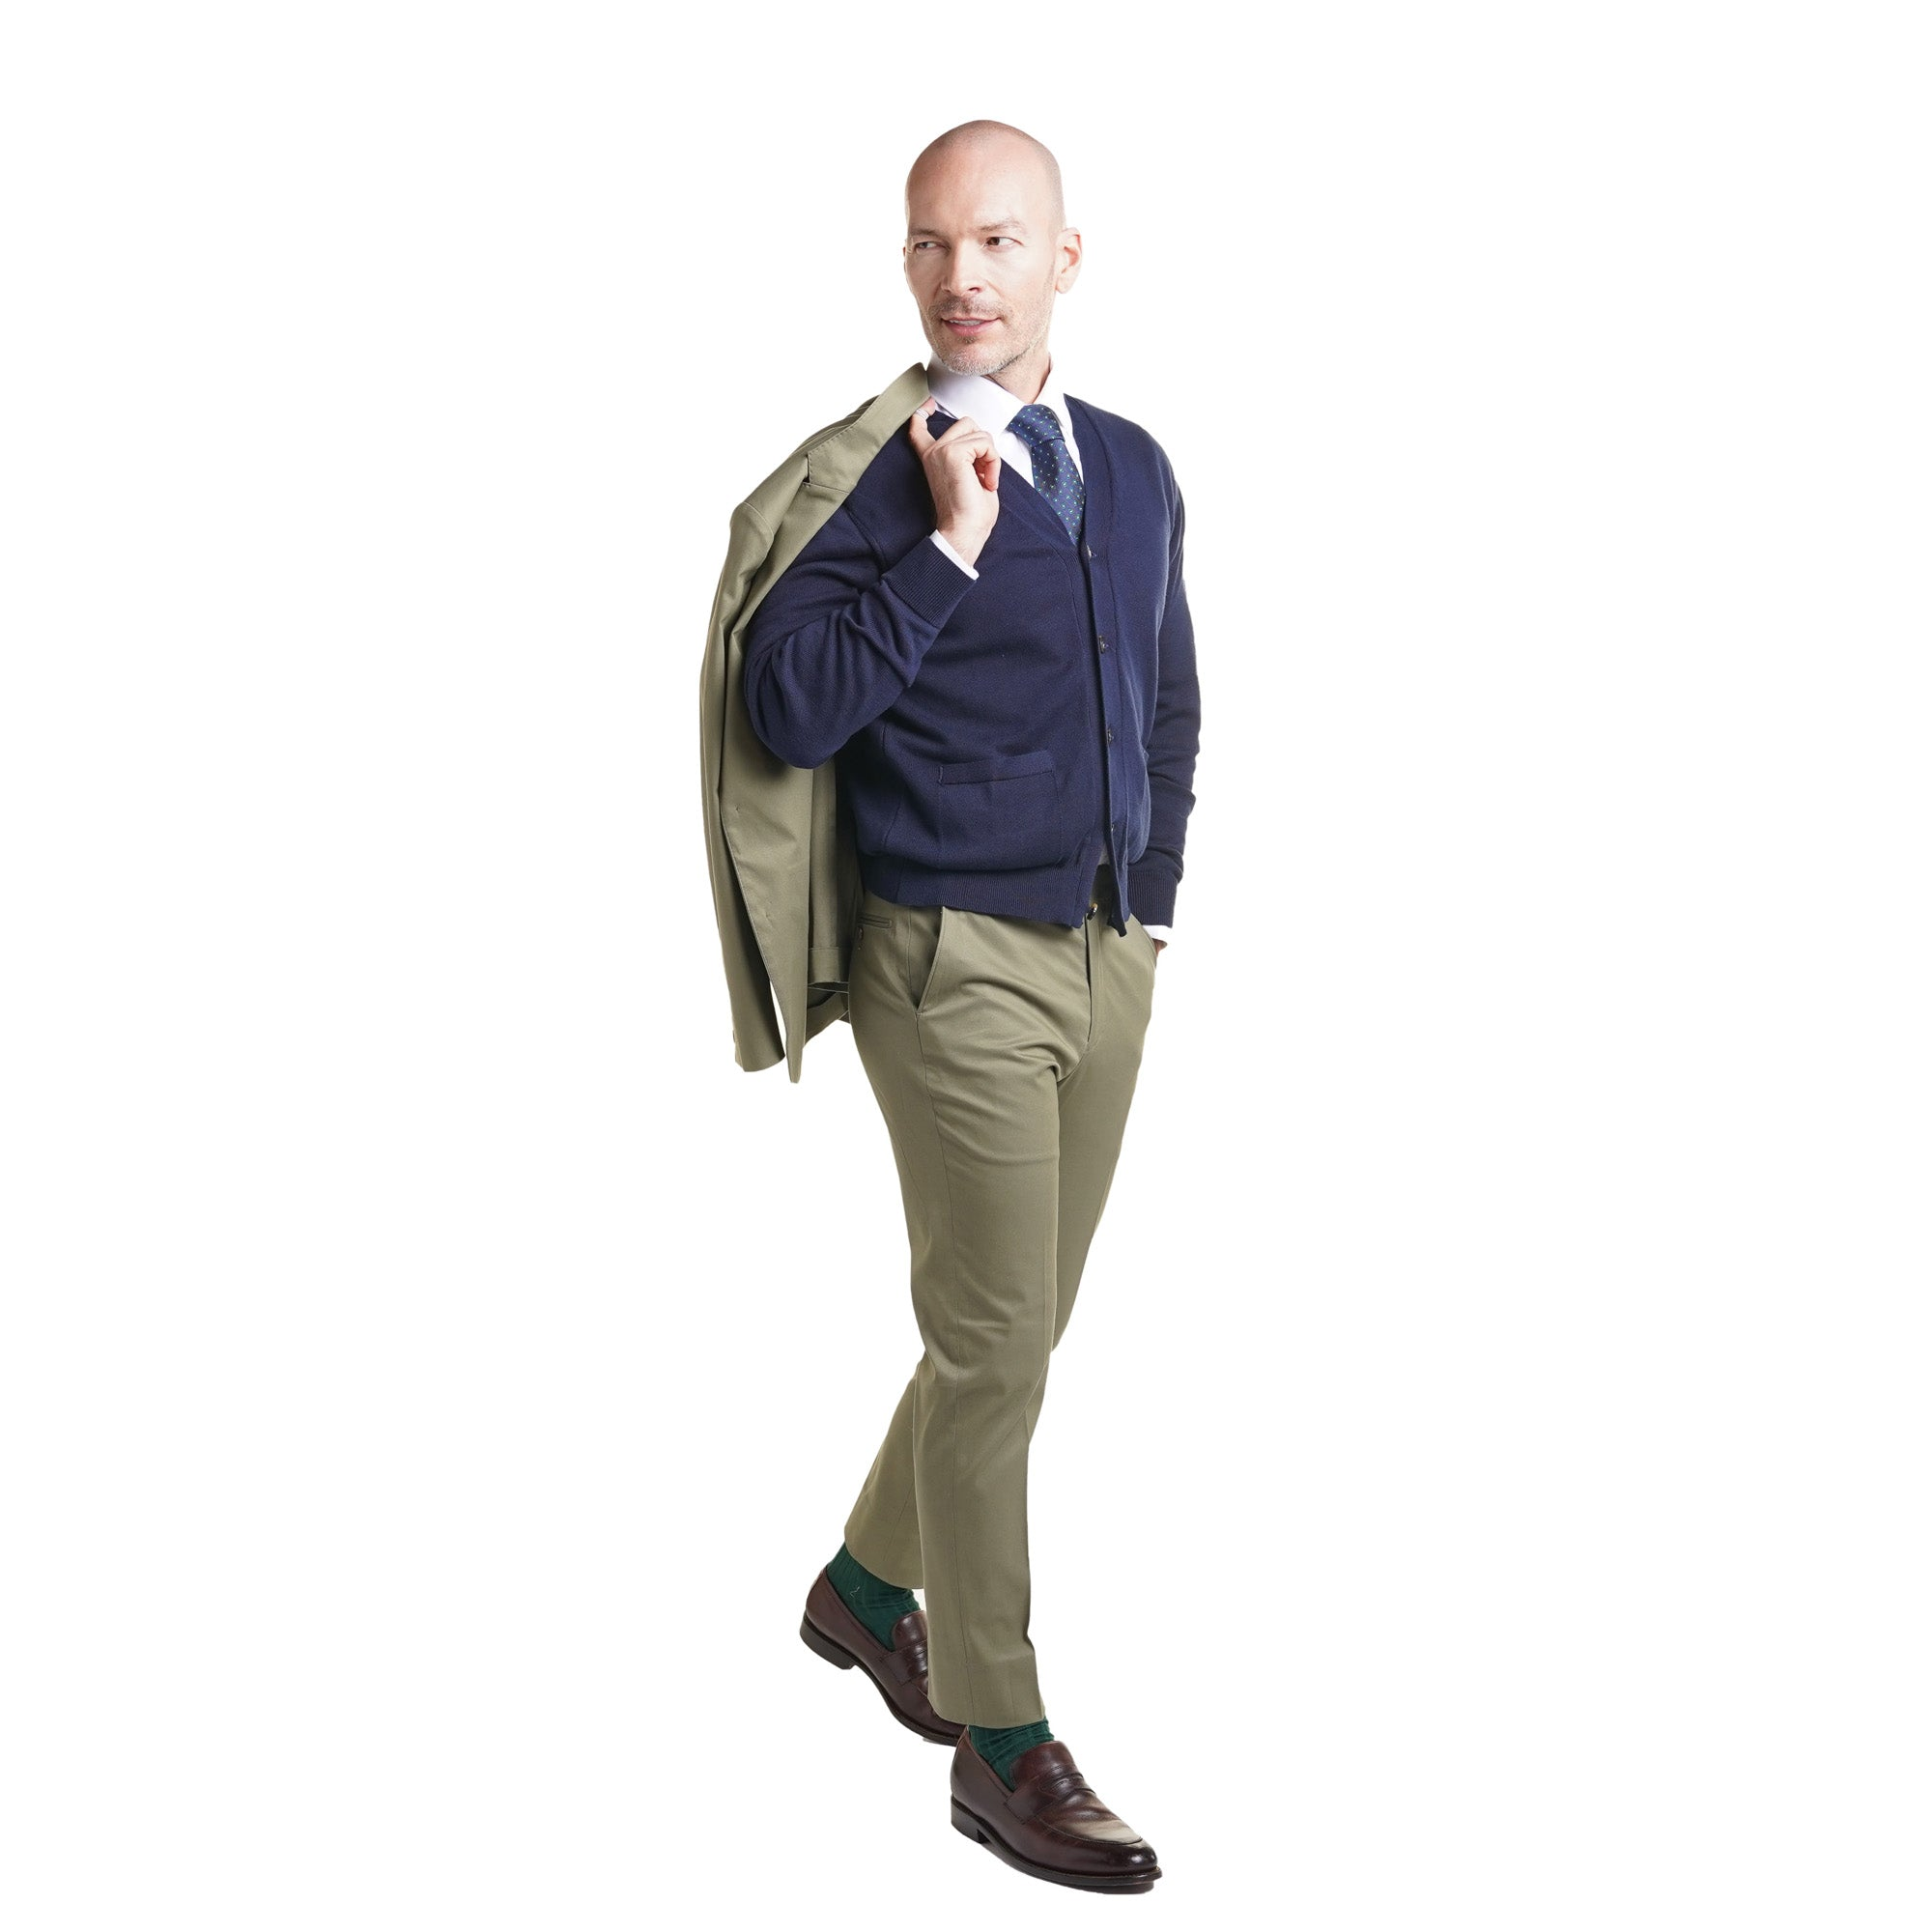 Cardigan with suit and jacket off